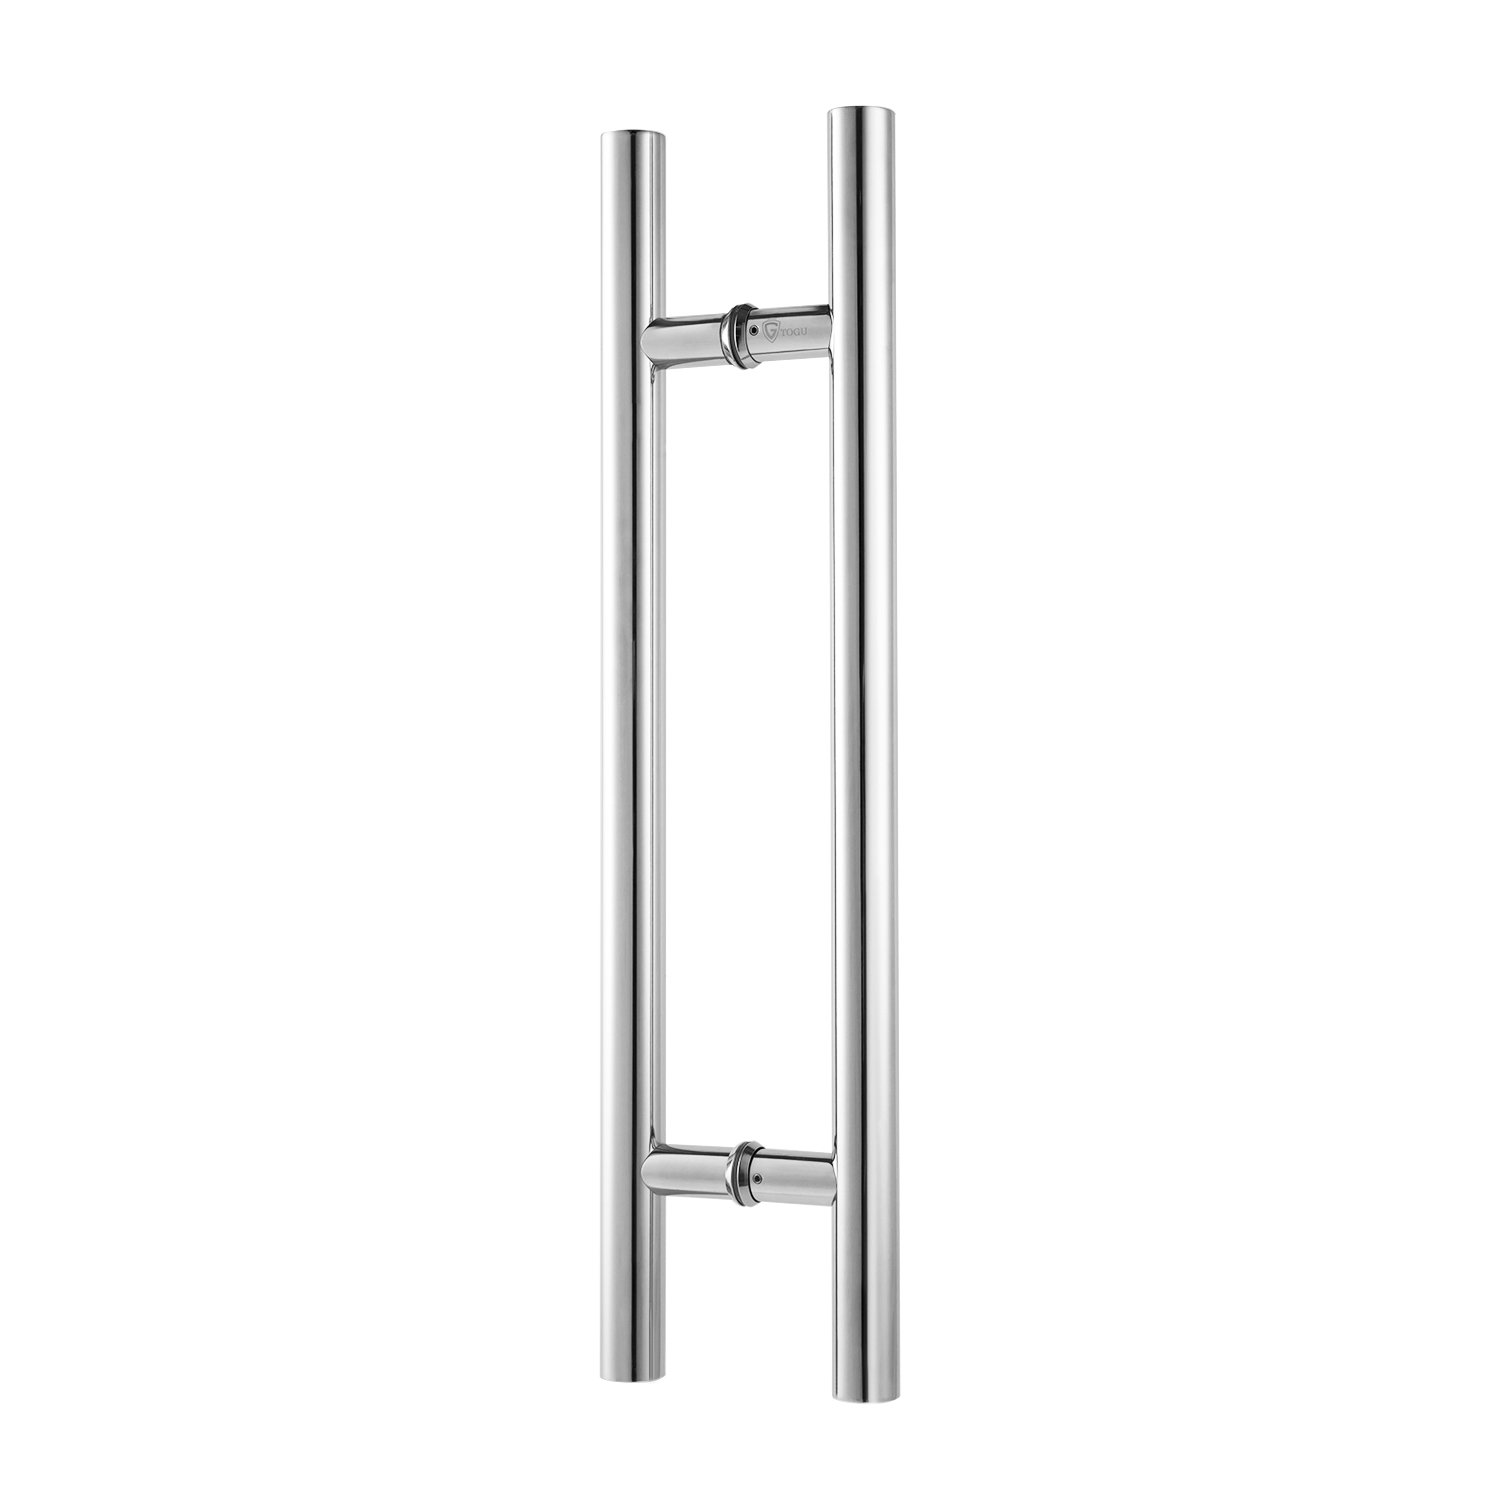 Togu TG-6012 600mm/24 inches Round Bar / H-shape/ Ladder Style Back to Back Stainless Steel Push Pull Door Handle for Solid Wood, Timber, Glass and Aluminum Doors,Mirror-Polished Chrome Finish